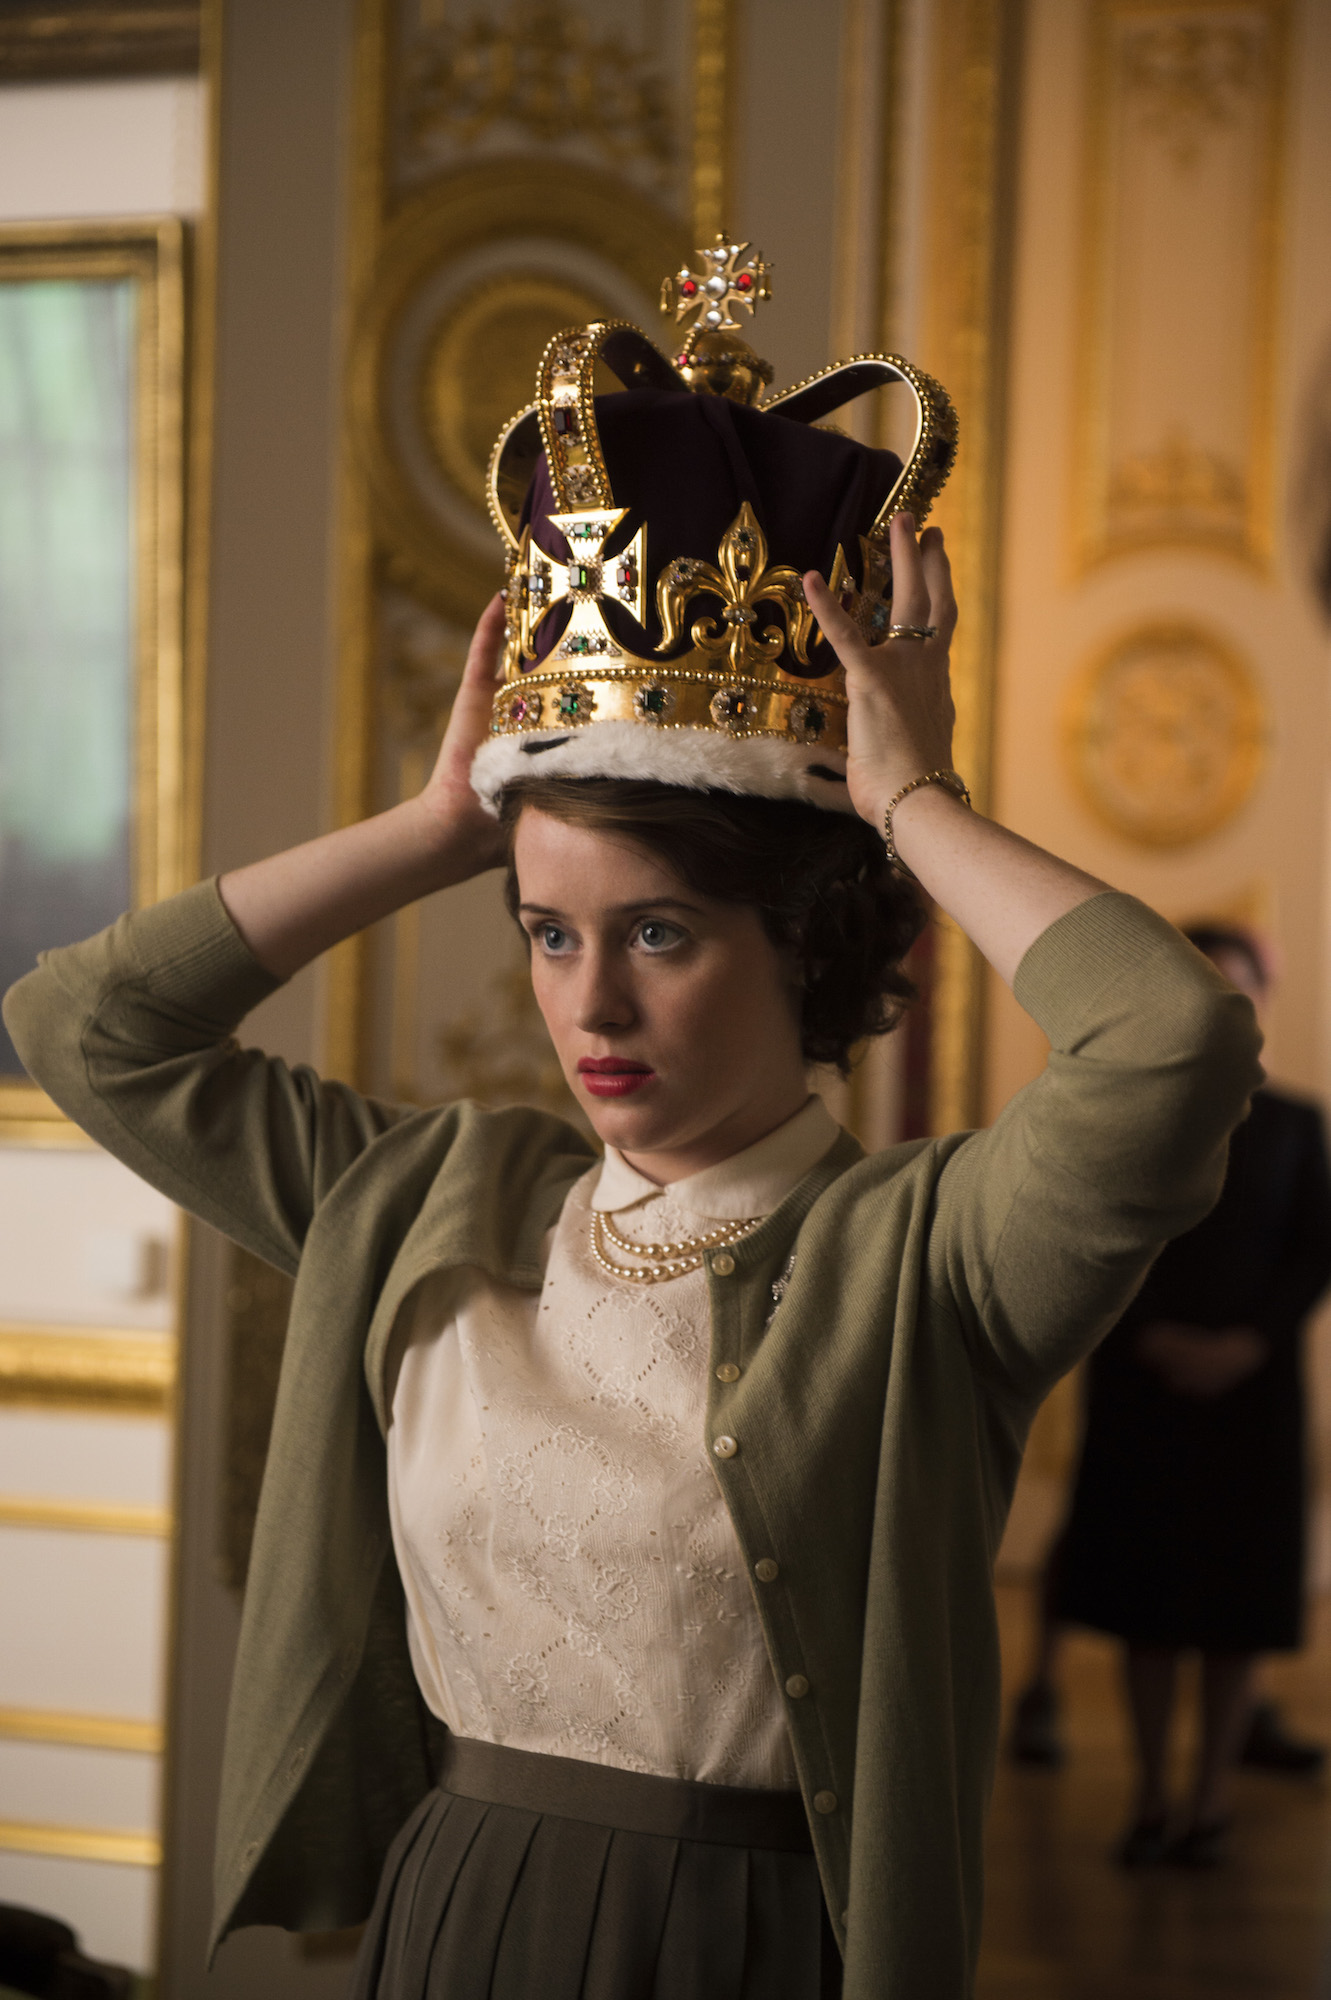 Queen Tv Movie The Crown